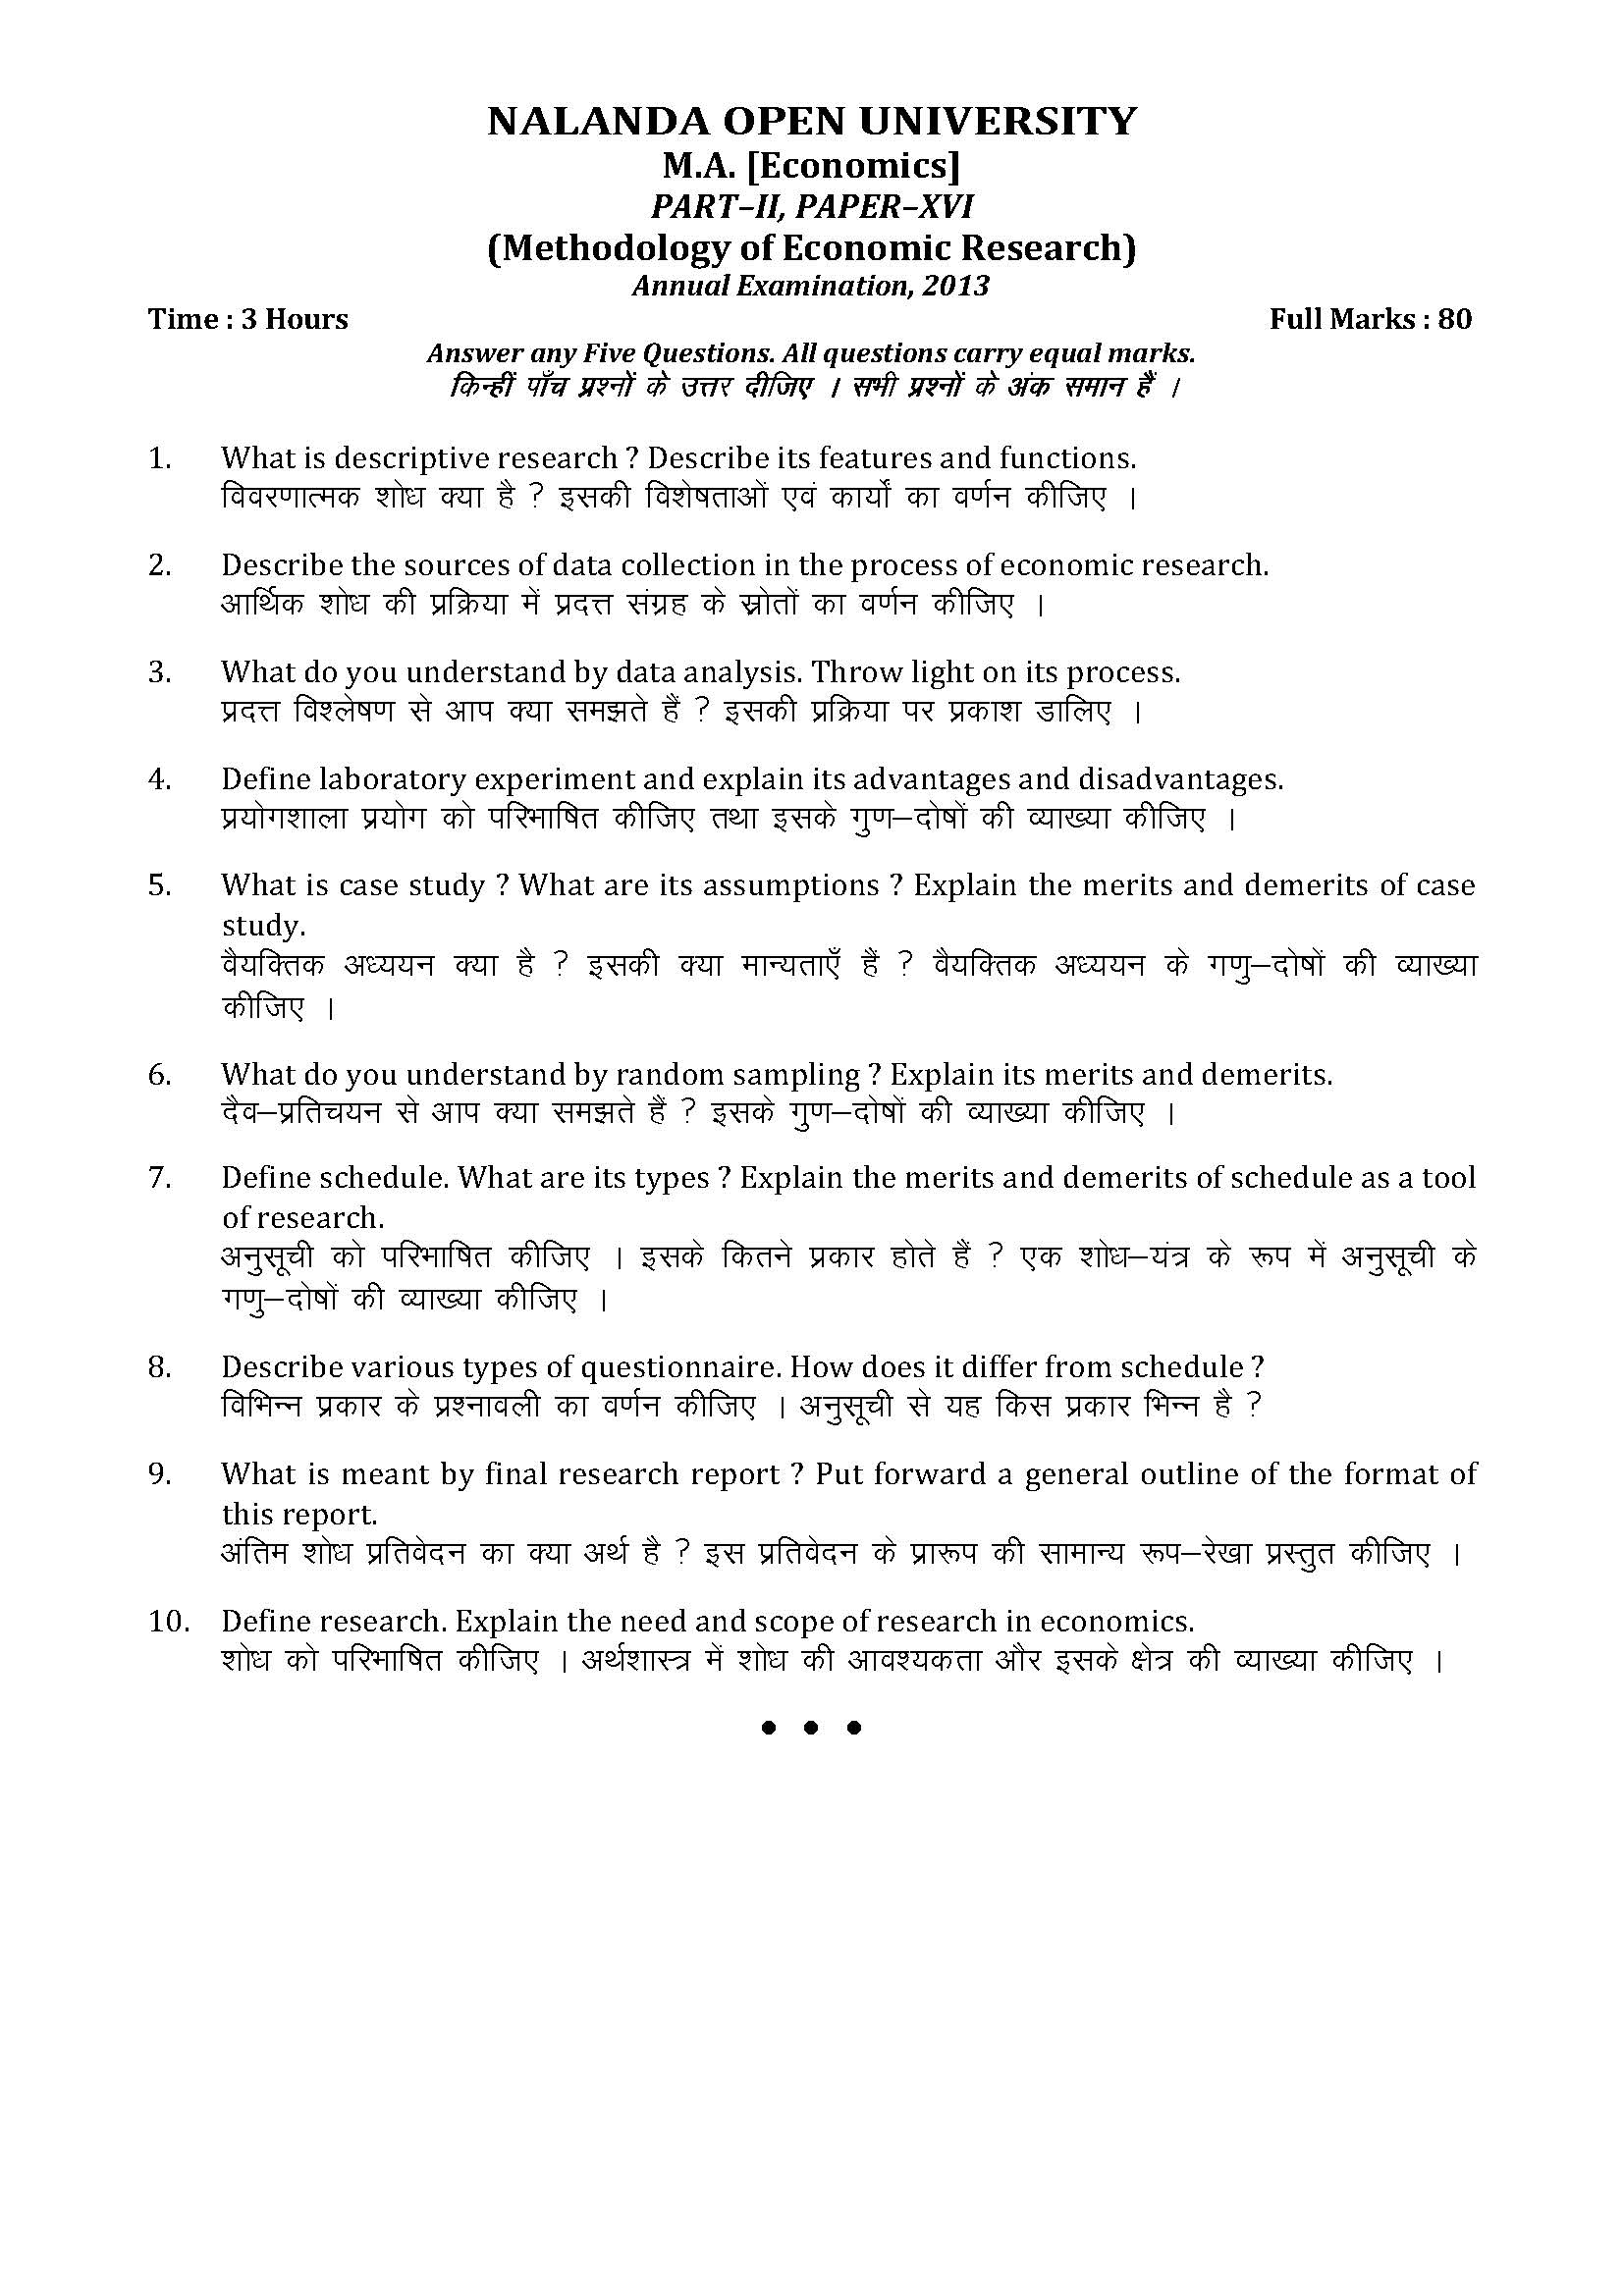 003 Research Paper Ma Economics Methodology Of Economic Part Ii Archaicawful Papers Pdf Free Format Full